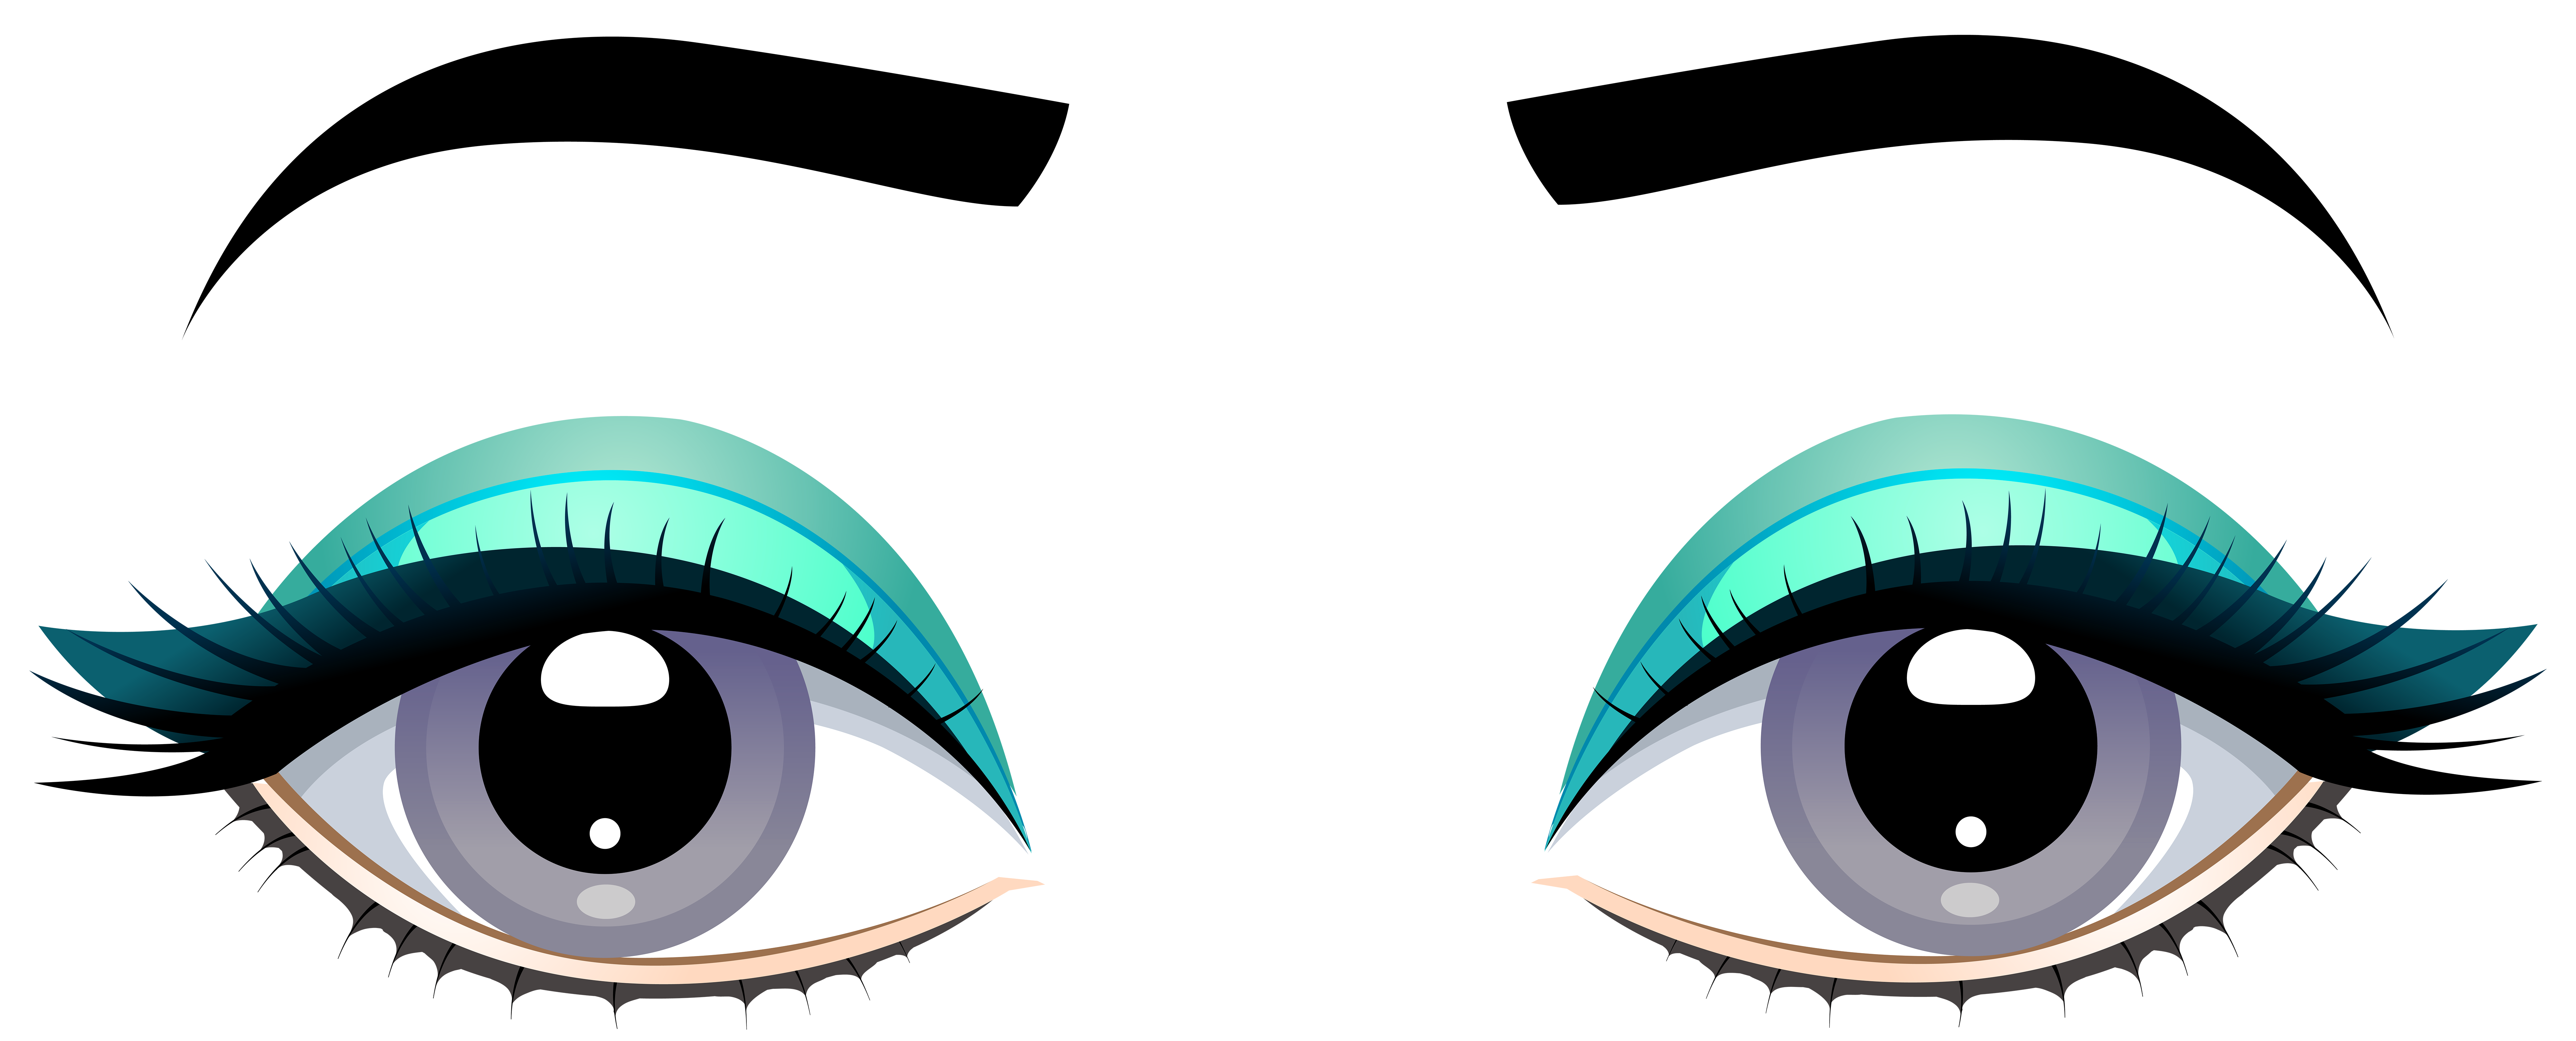 8000x3233 Collection Of Free Eyebrow Drawing Right Eye Download On Ui Ex